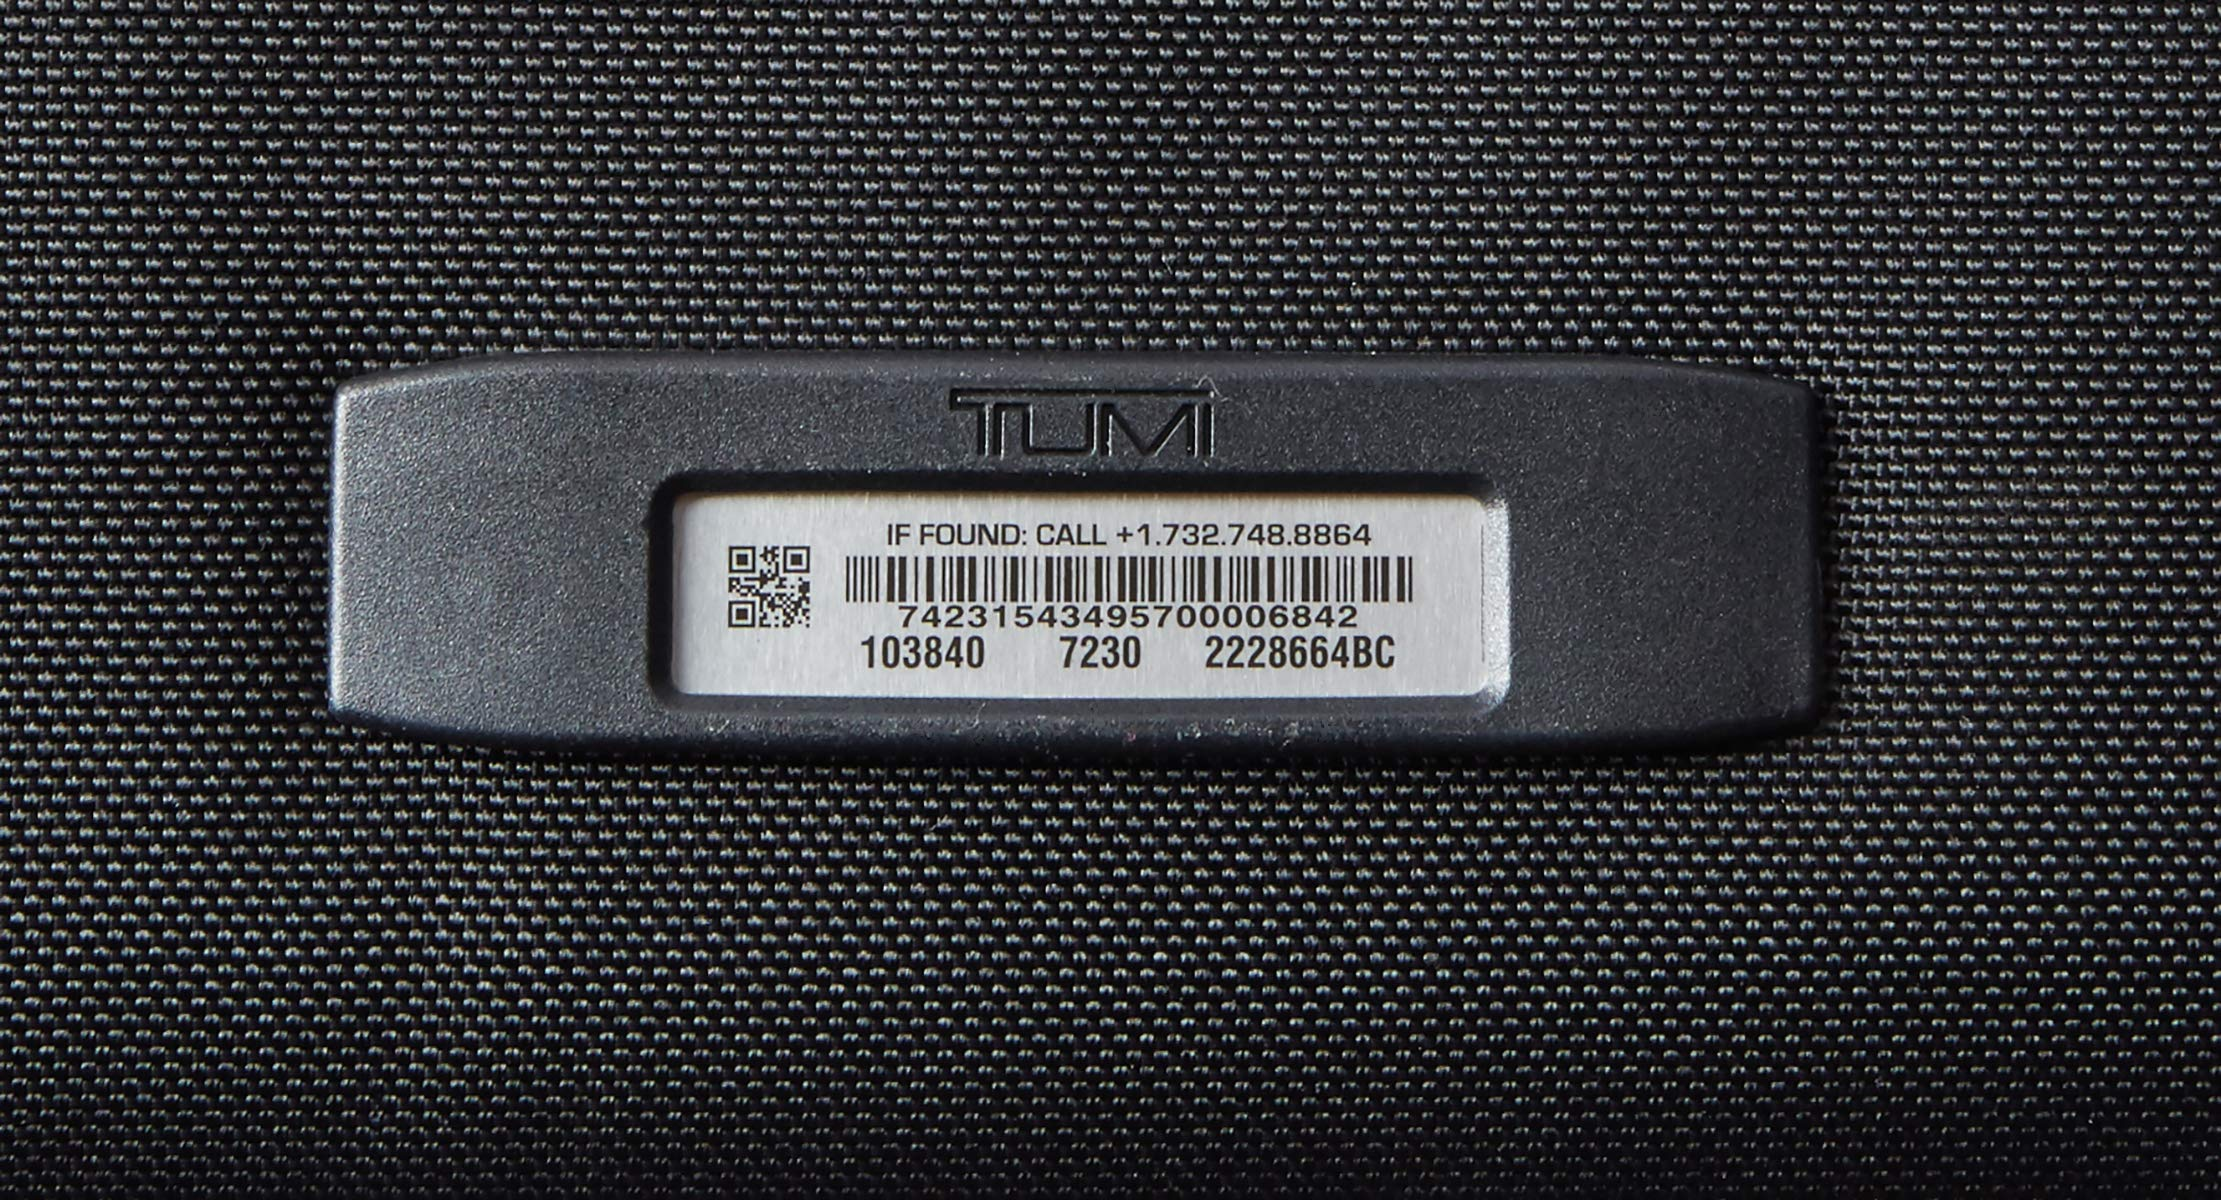 Tumi Merge Short Trip Expandable with Packing Case Equipaje de Mano, 66 cm, 71 Liters, Negro (Black Contrast)